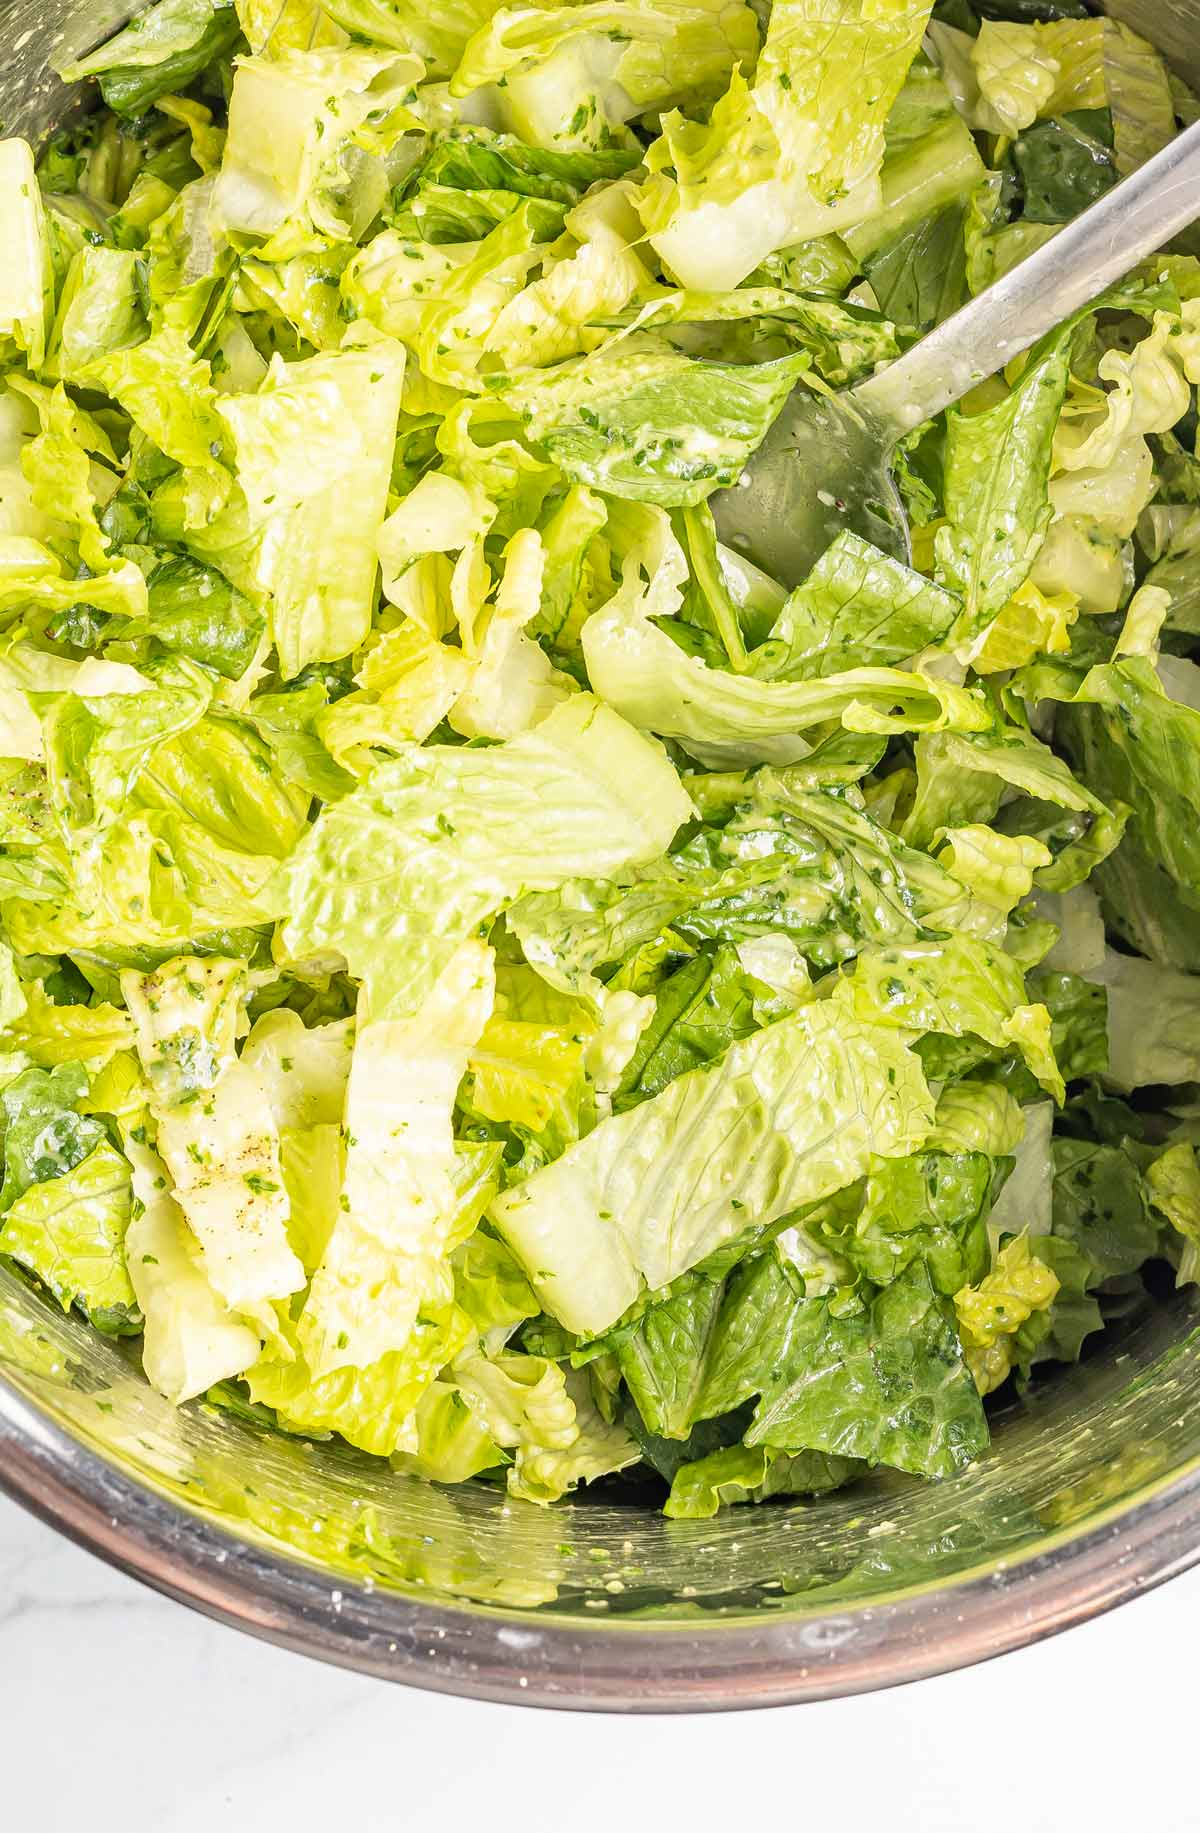 the salad being tossed to together.